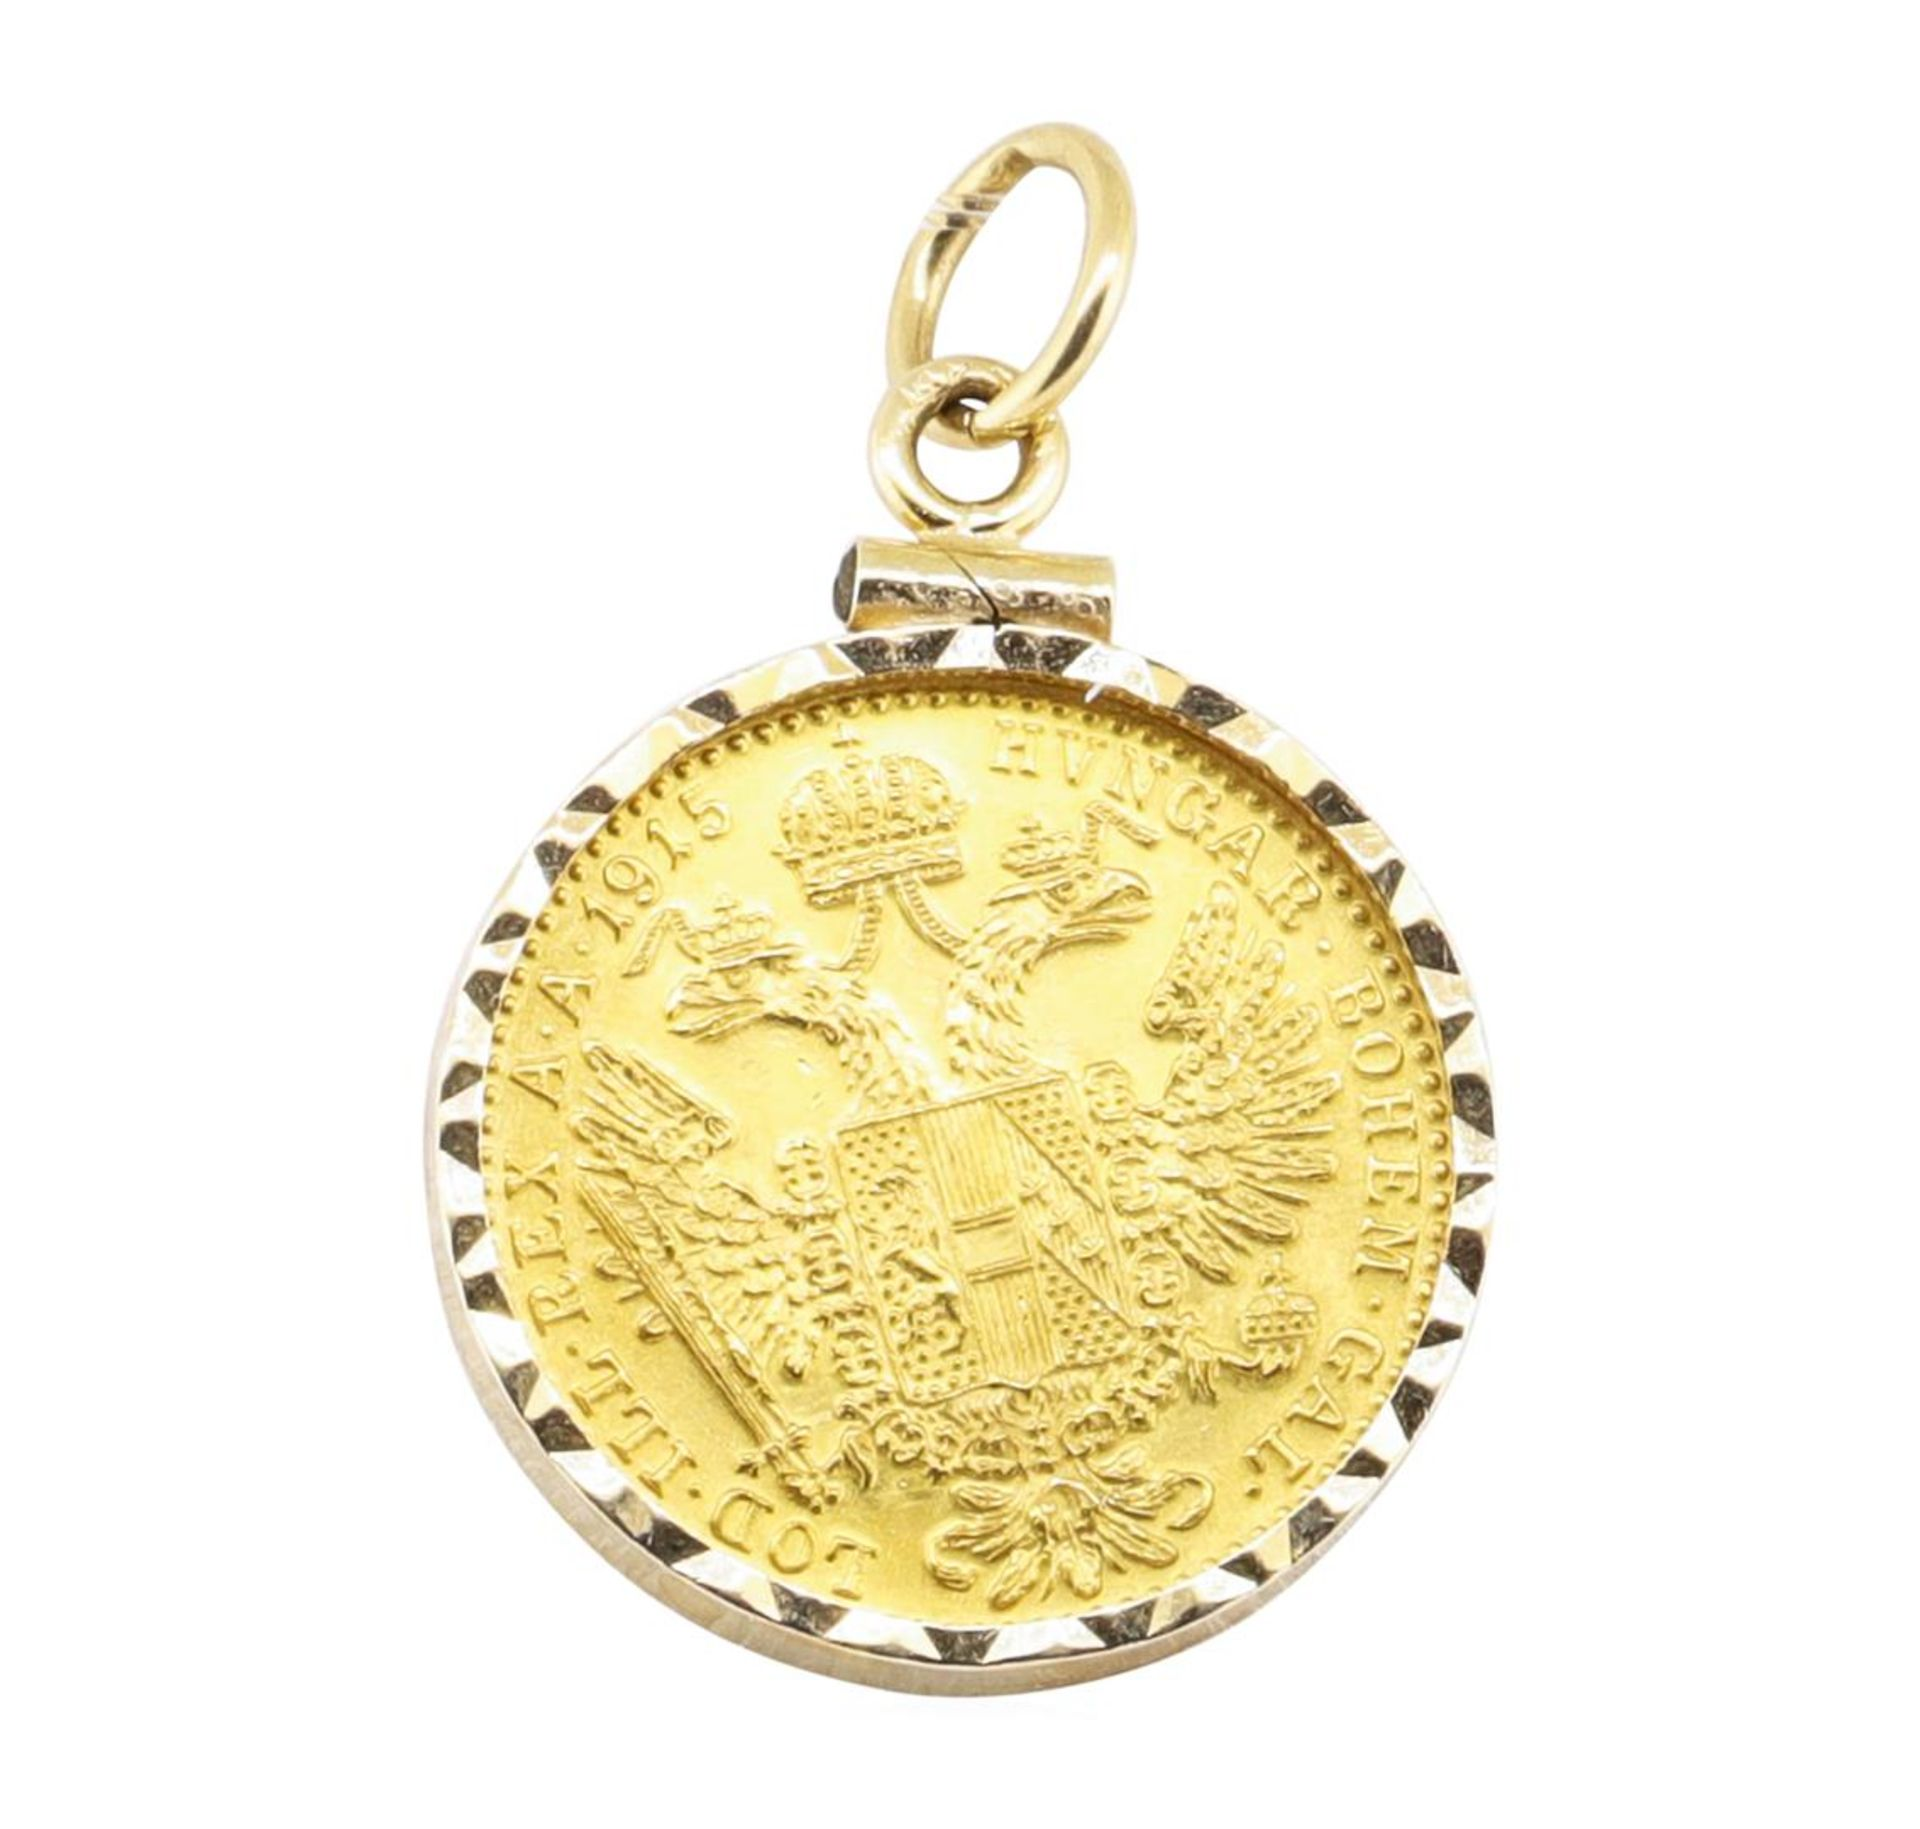 Austrain Ducat Pendant with Frame - 14 - 23KT Yellow Gold - Image 2 of 2